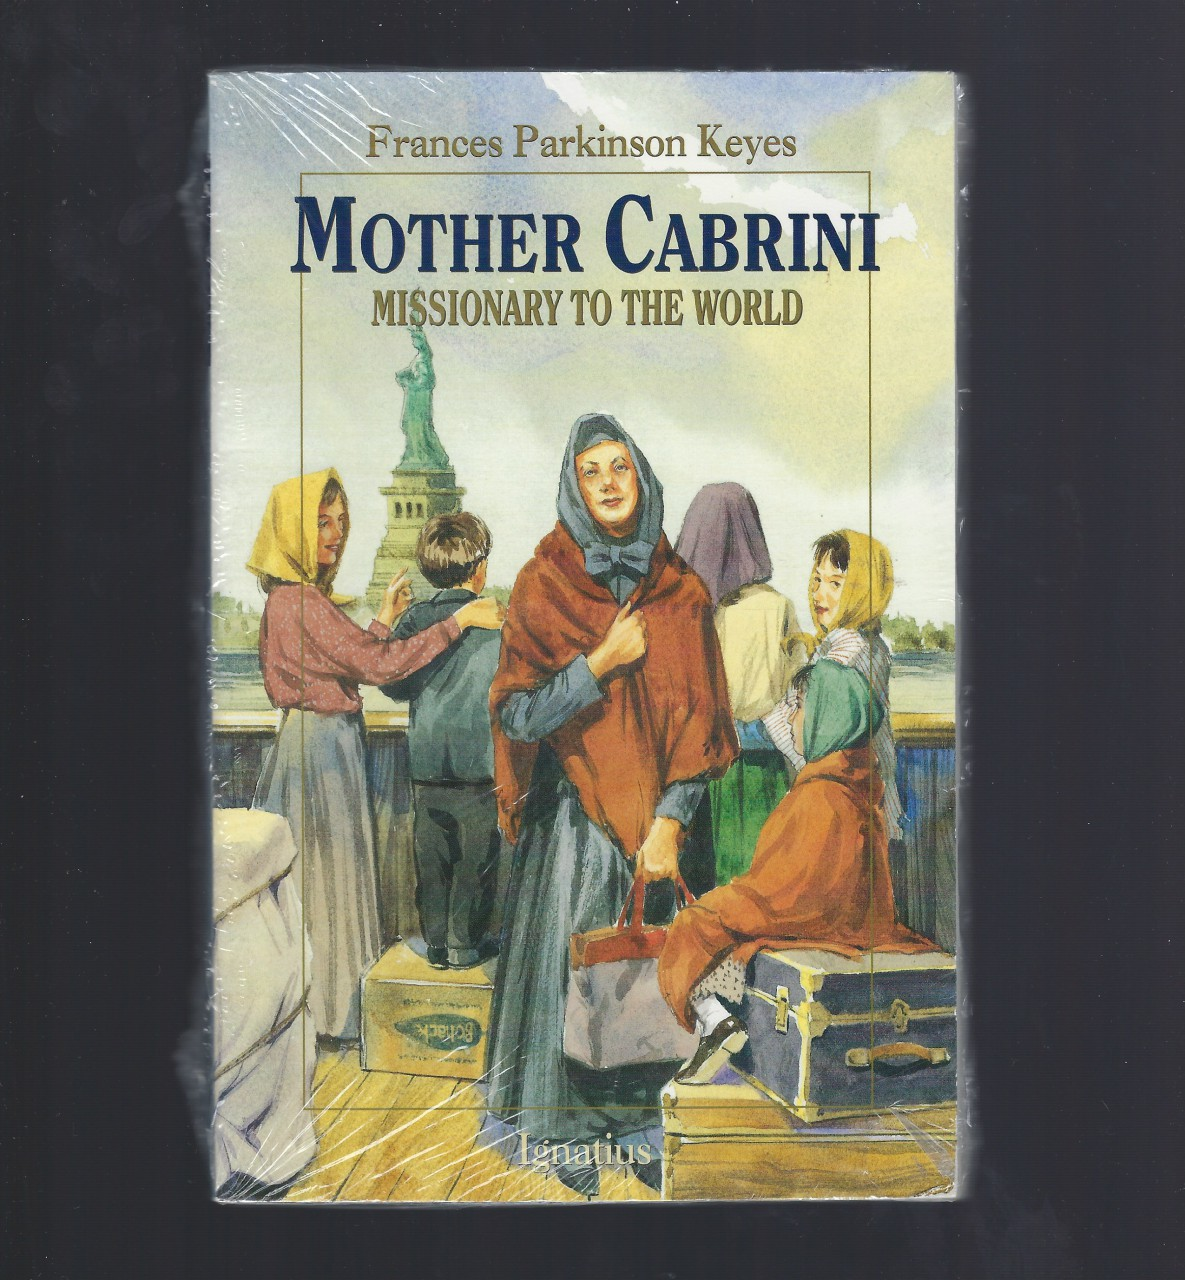 Mother Cabrini: Missionary to the World (Vision Books), Frances Parkinson Keyes; Illustrator-John Lawn